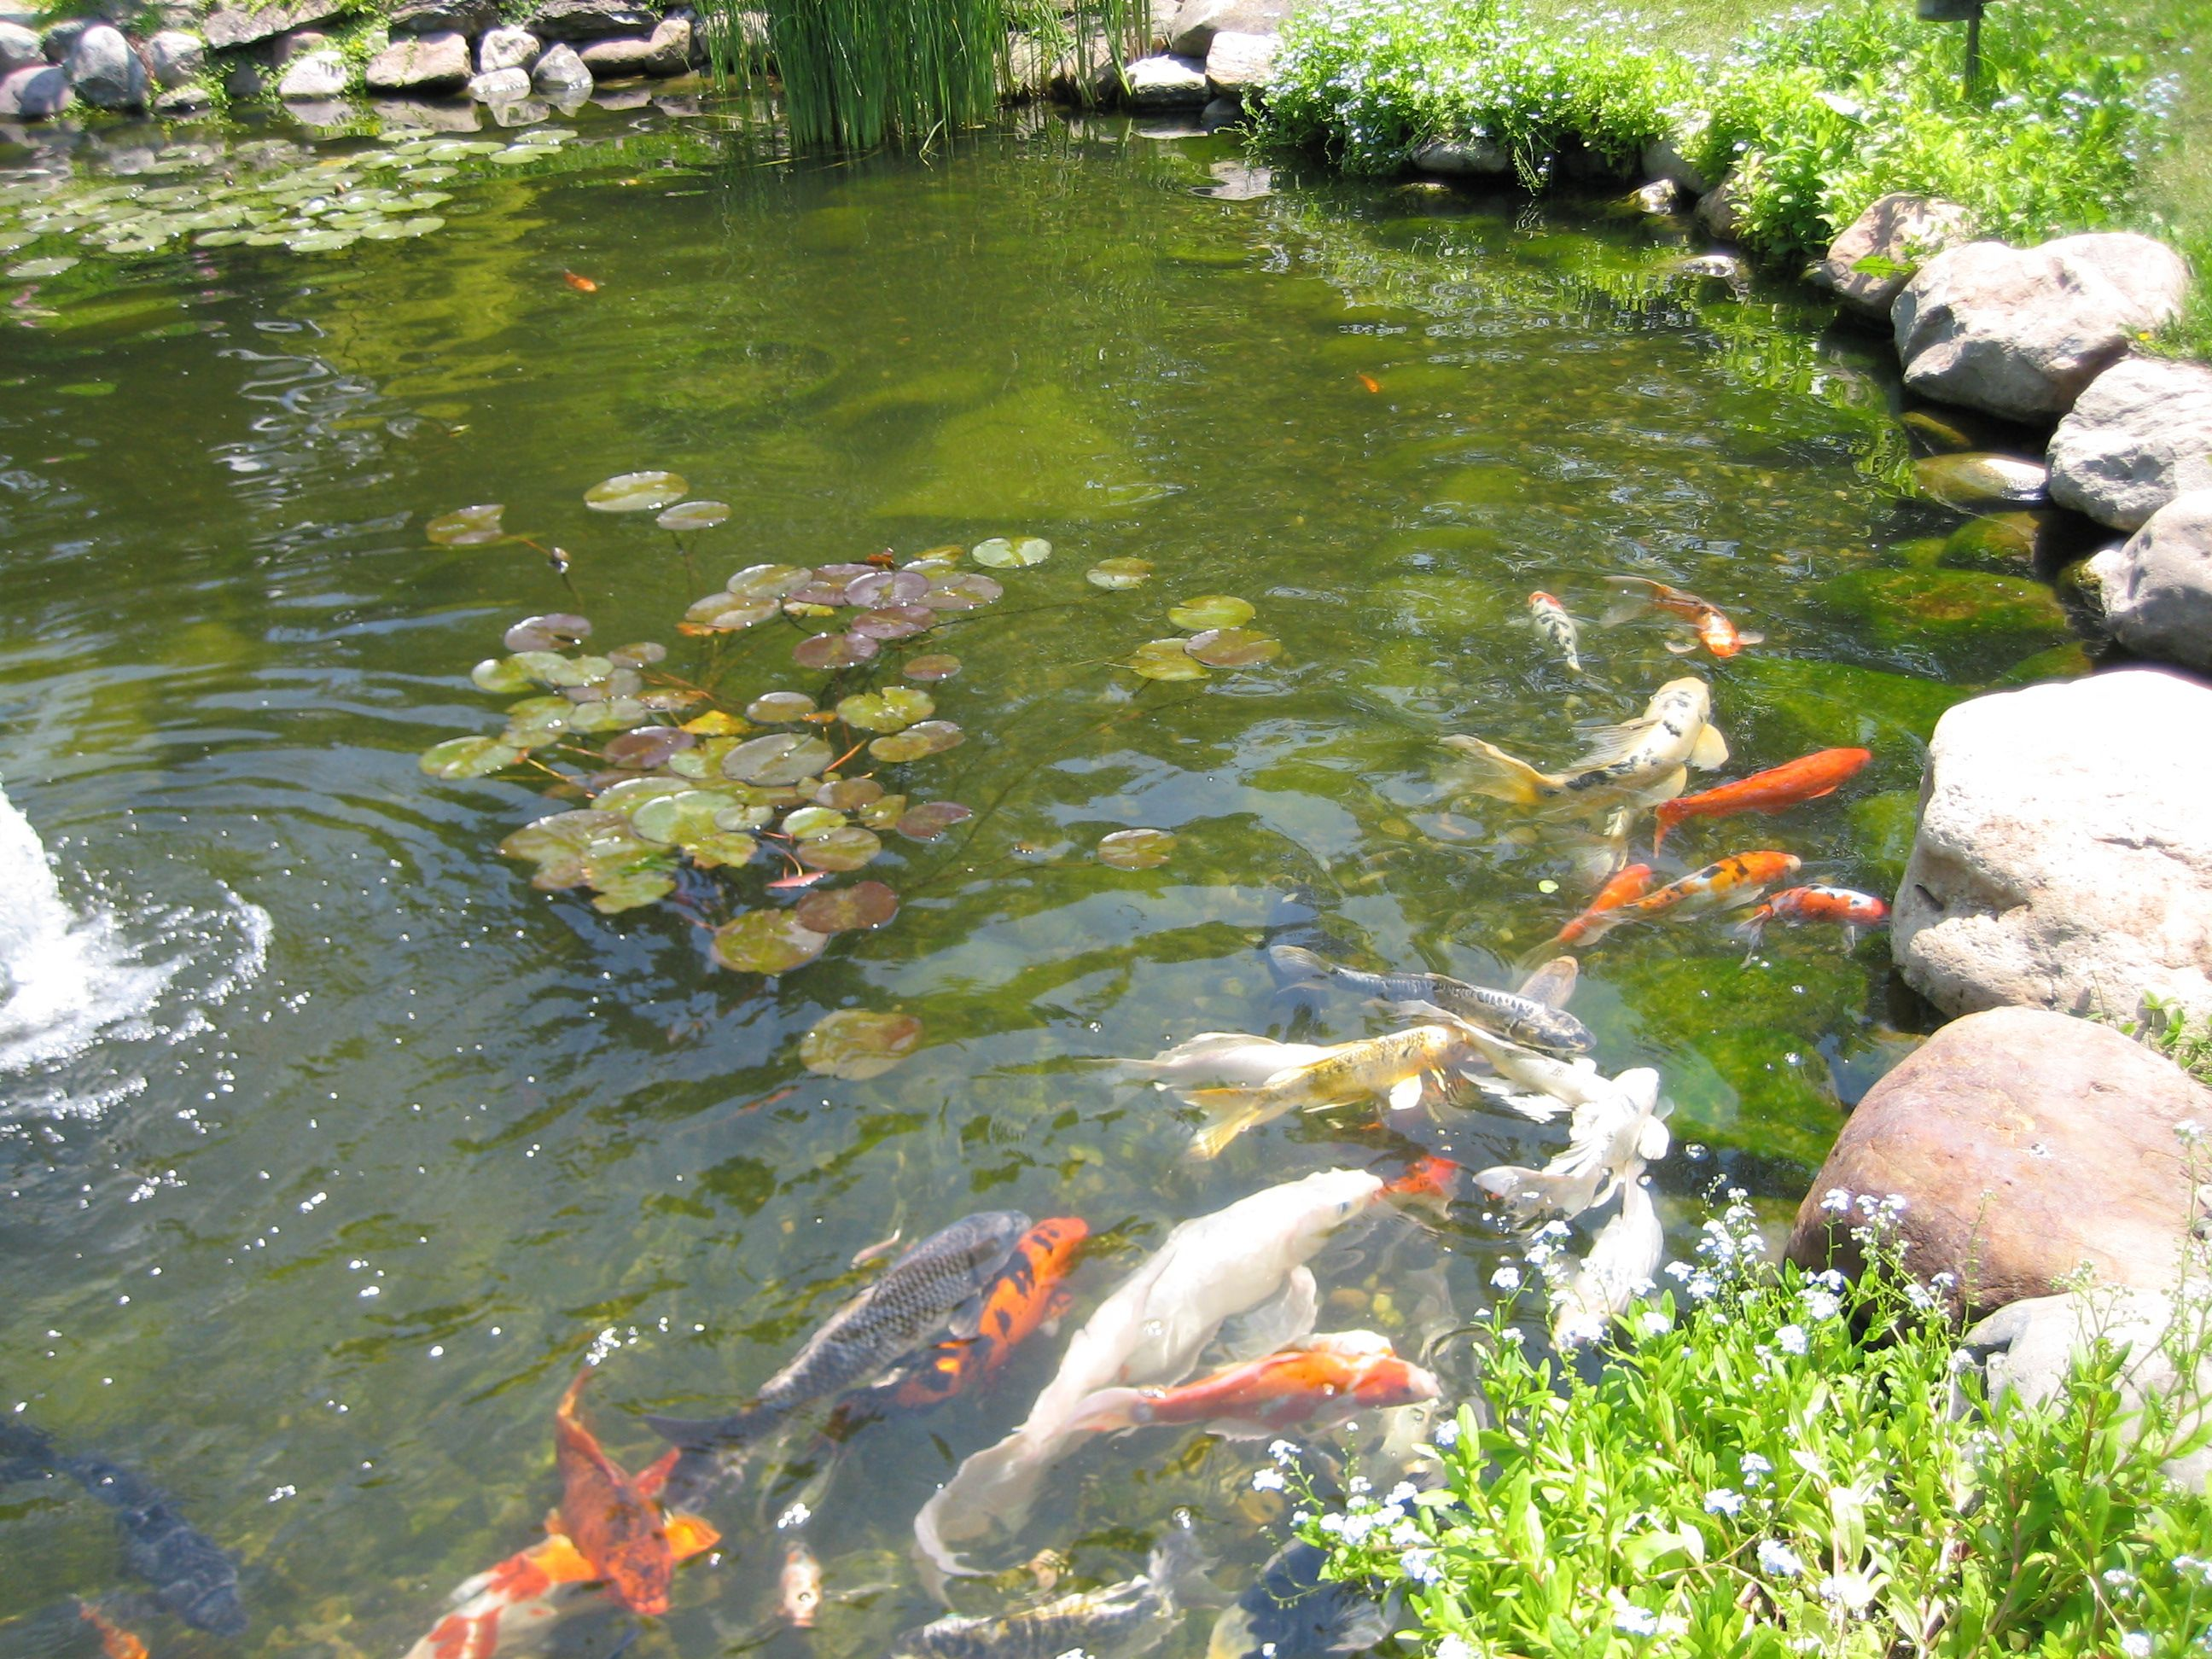 Landscaping waterfalls and fish ponds koi fish for Small koi fish